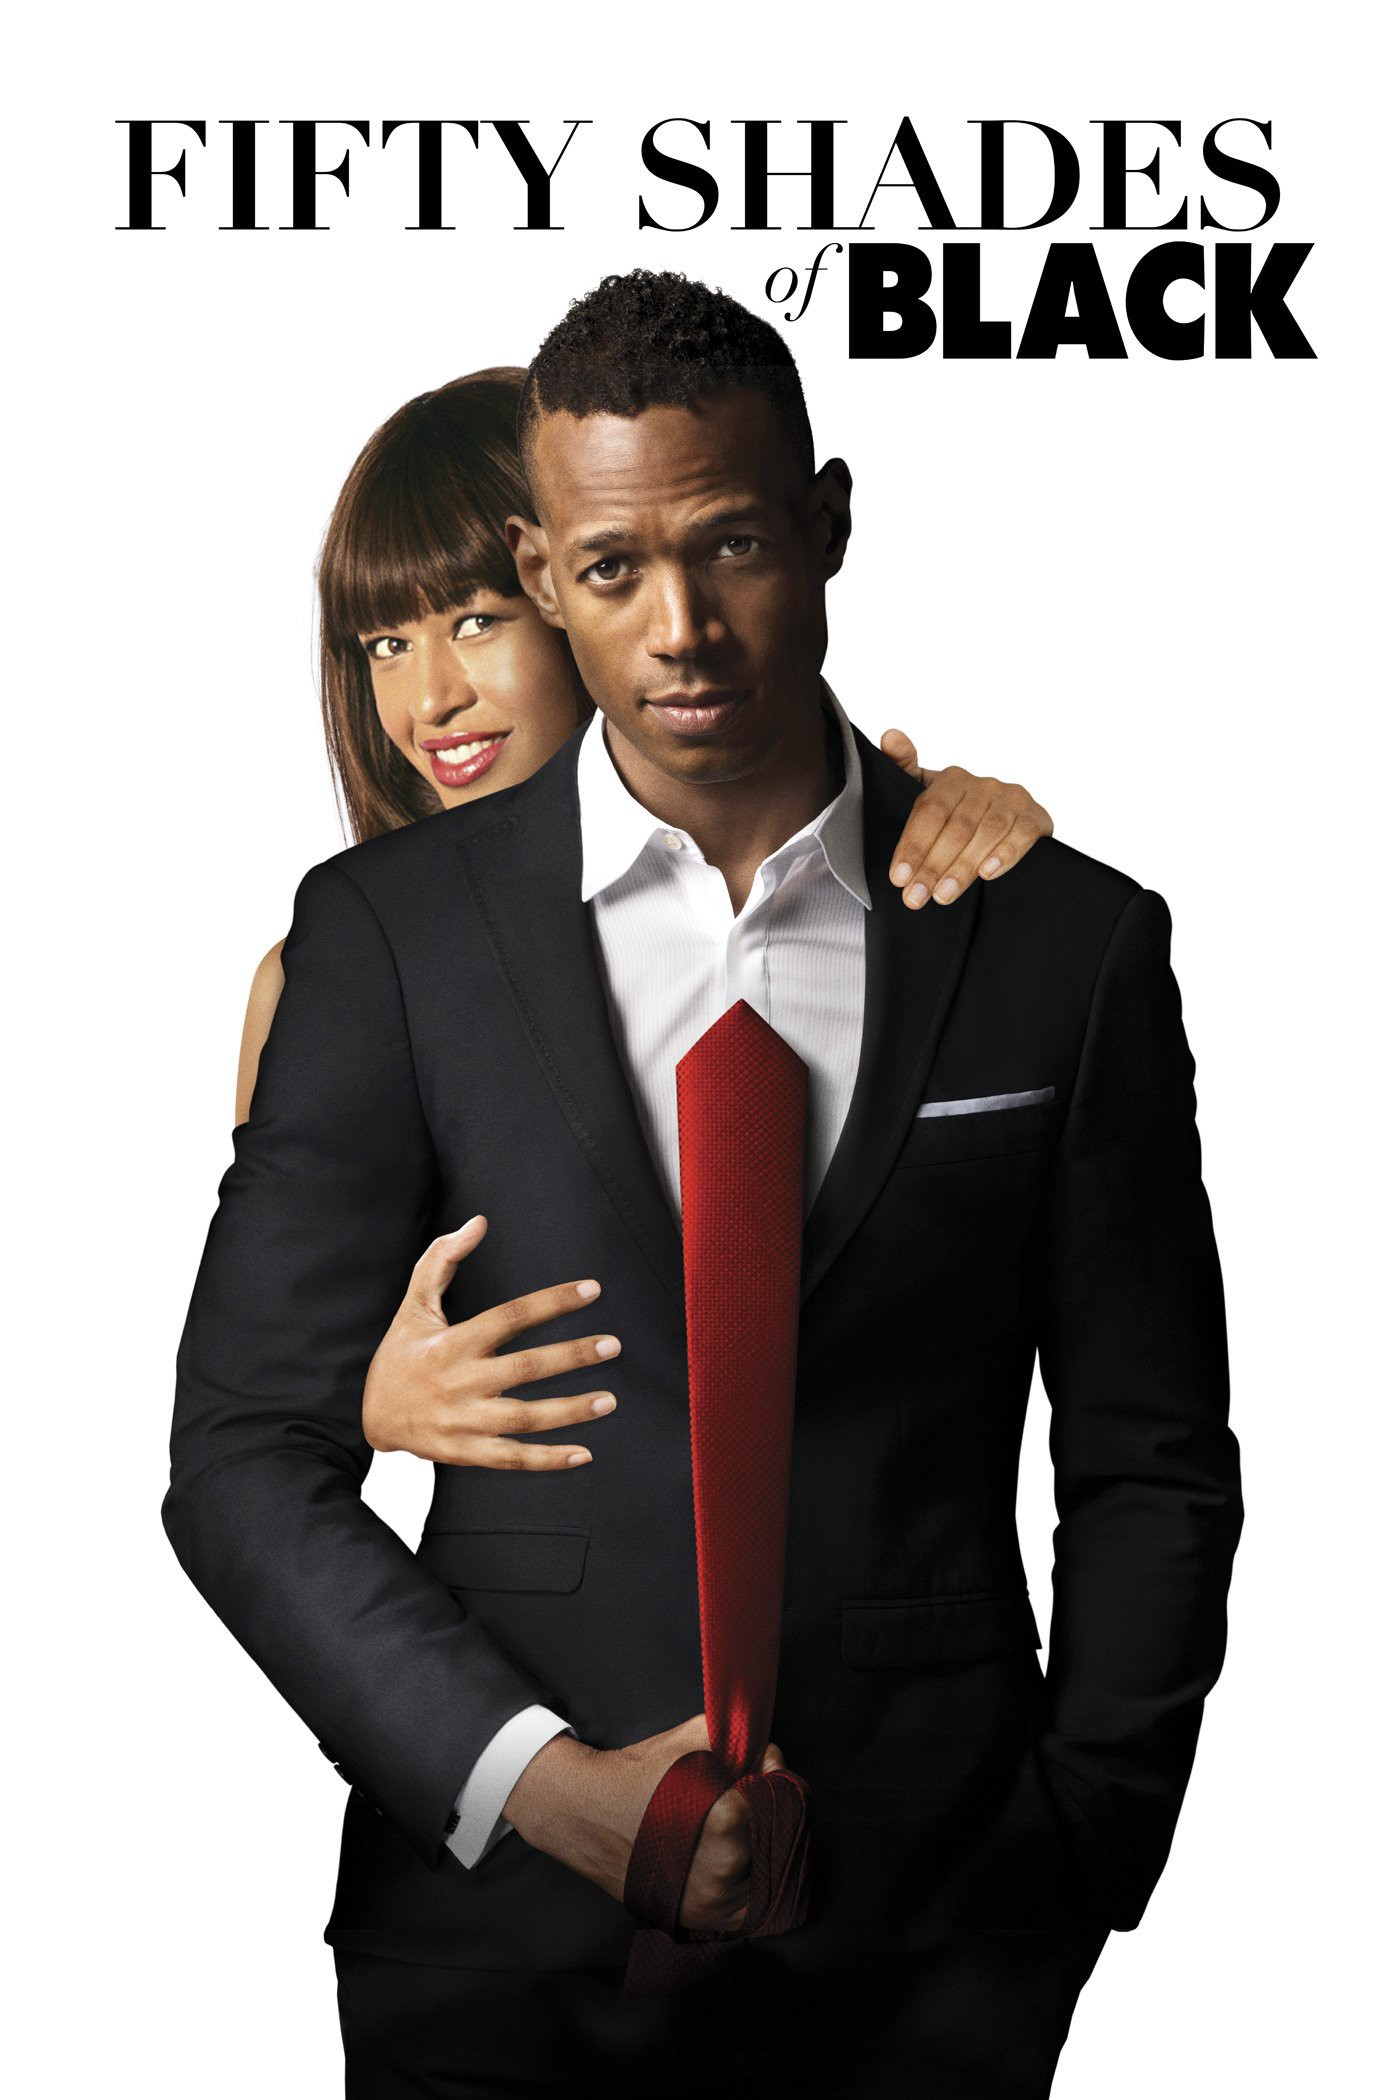 fifty shades of black full movie free download mp4